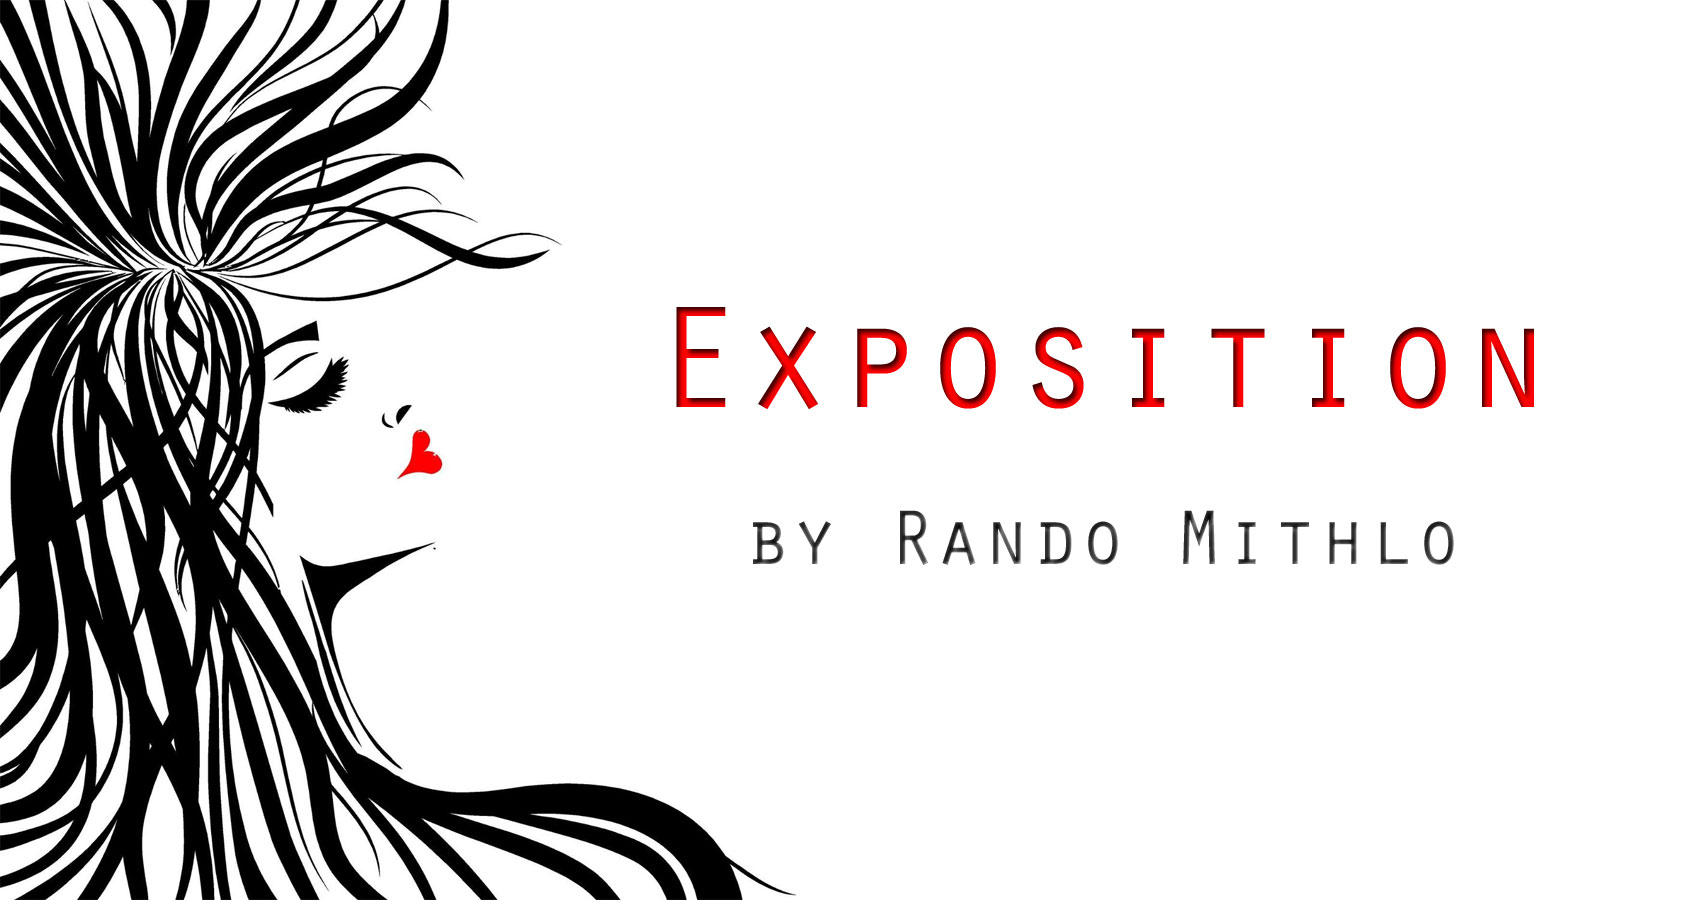 Exposition by Rando Mithlo at Spillwords.com